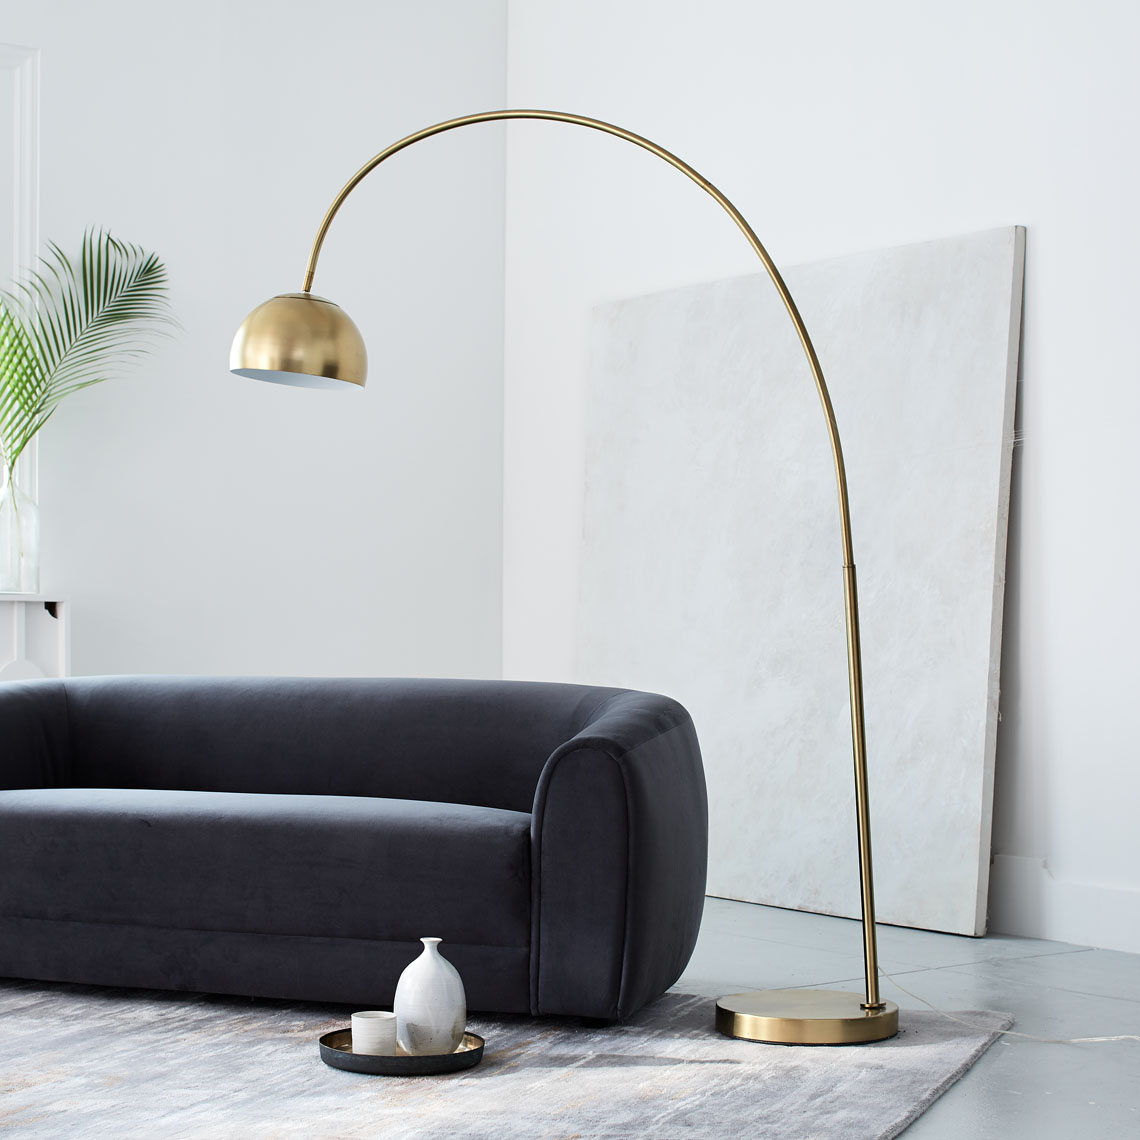 pip-overarching-metal-shade-floor-lamp-brass-off-su17-096copy